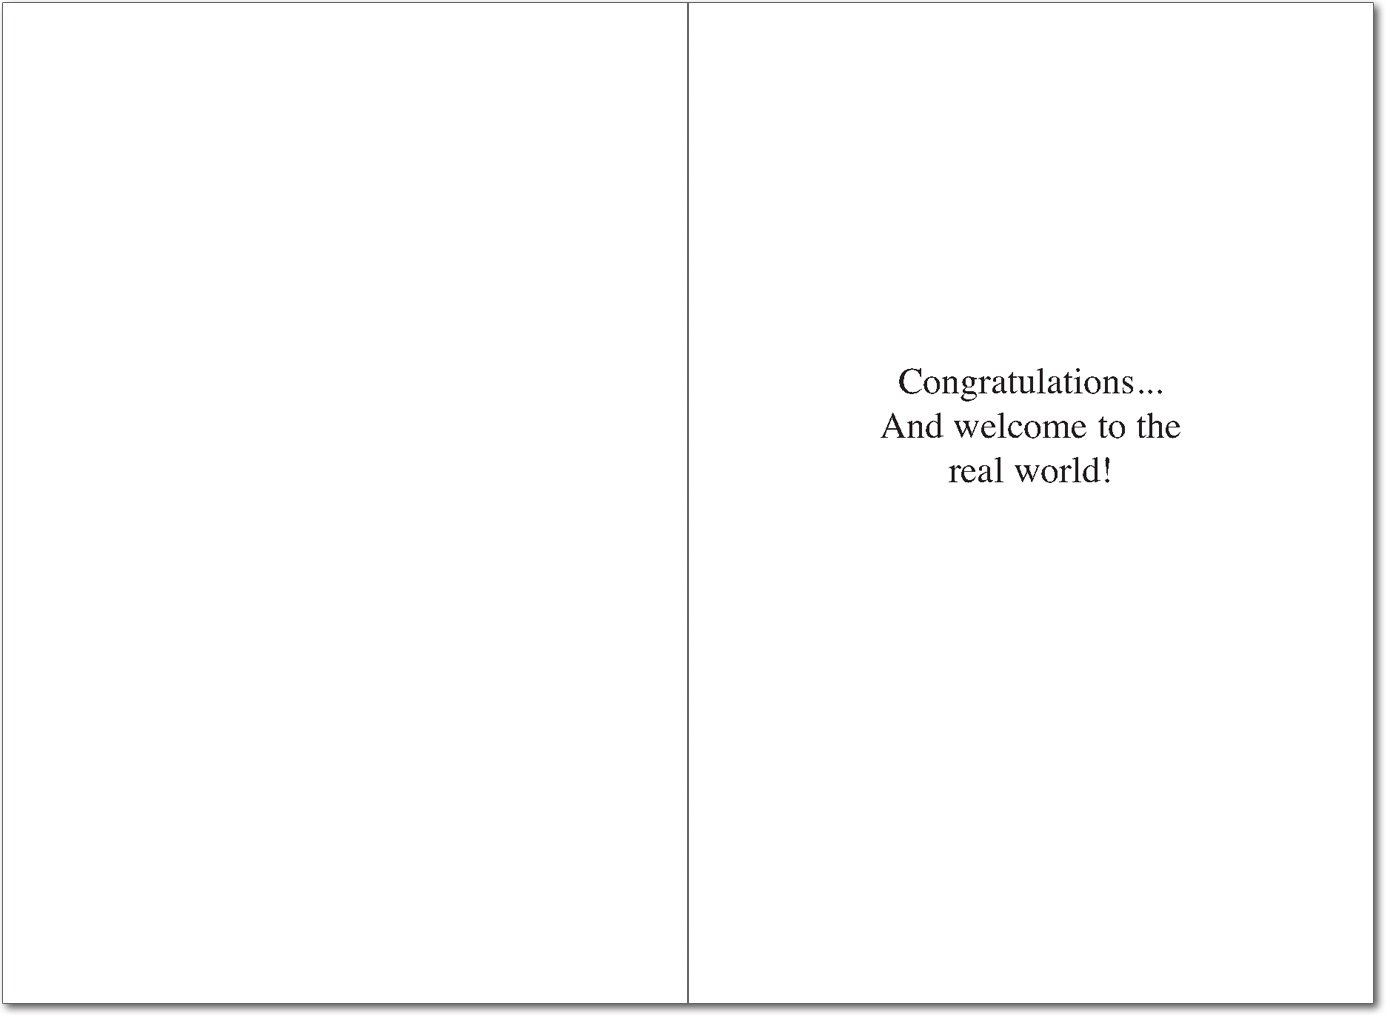 Amazon nobleworks happy grad funny graduation greeting card amazon nobleworks happy grad funny graduation greeting card 5 x 7 4956 greeting cards office products kristyandbryce Image collections